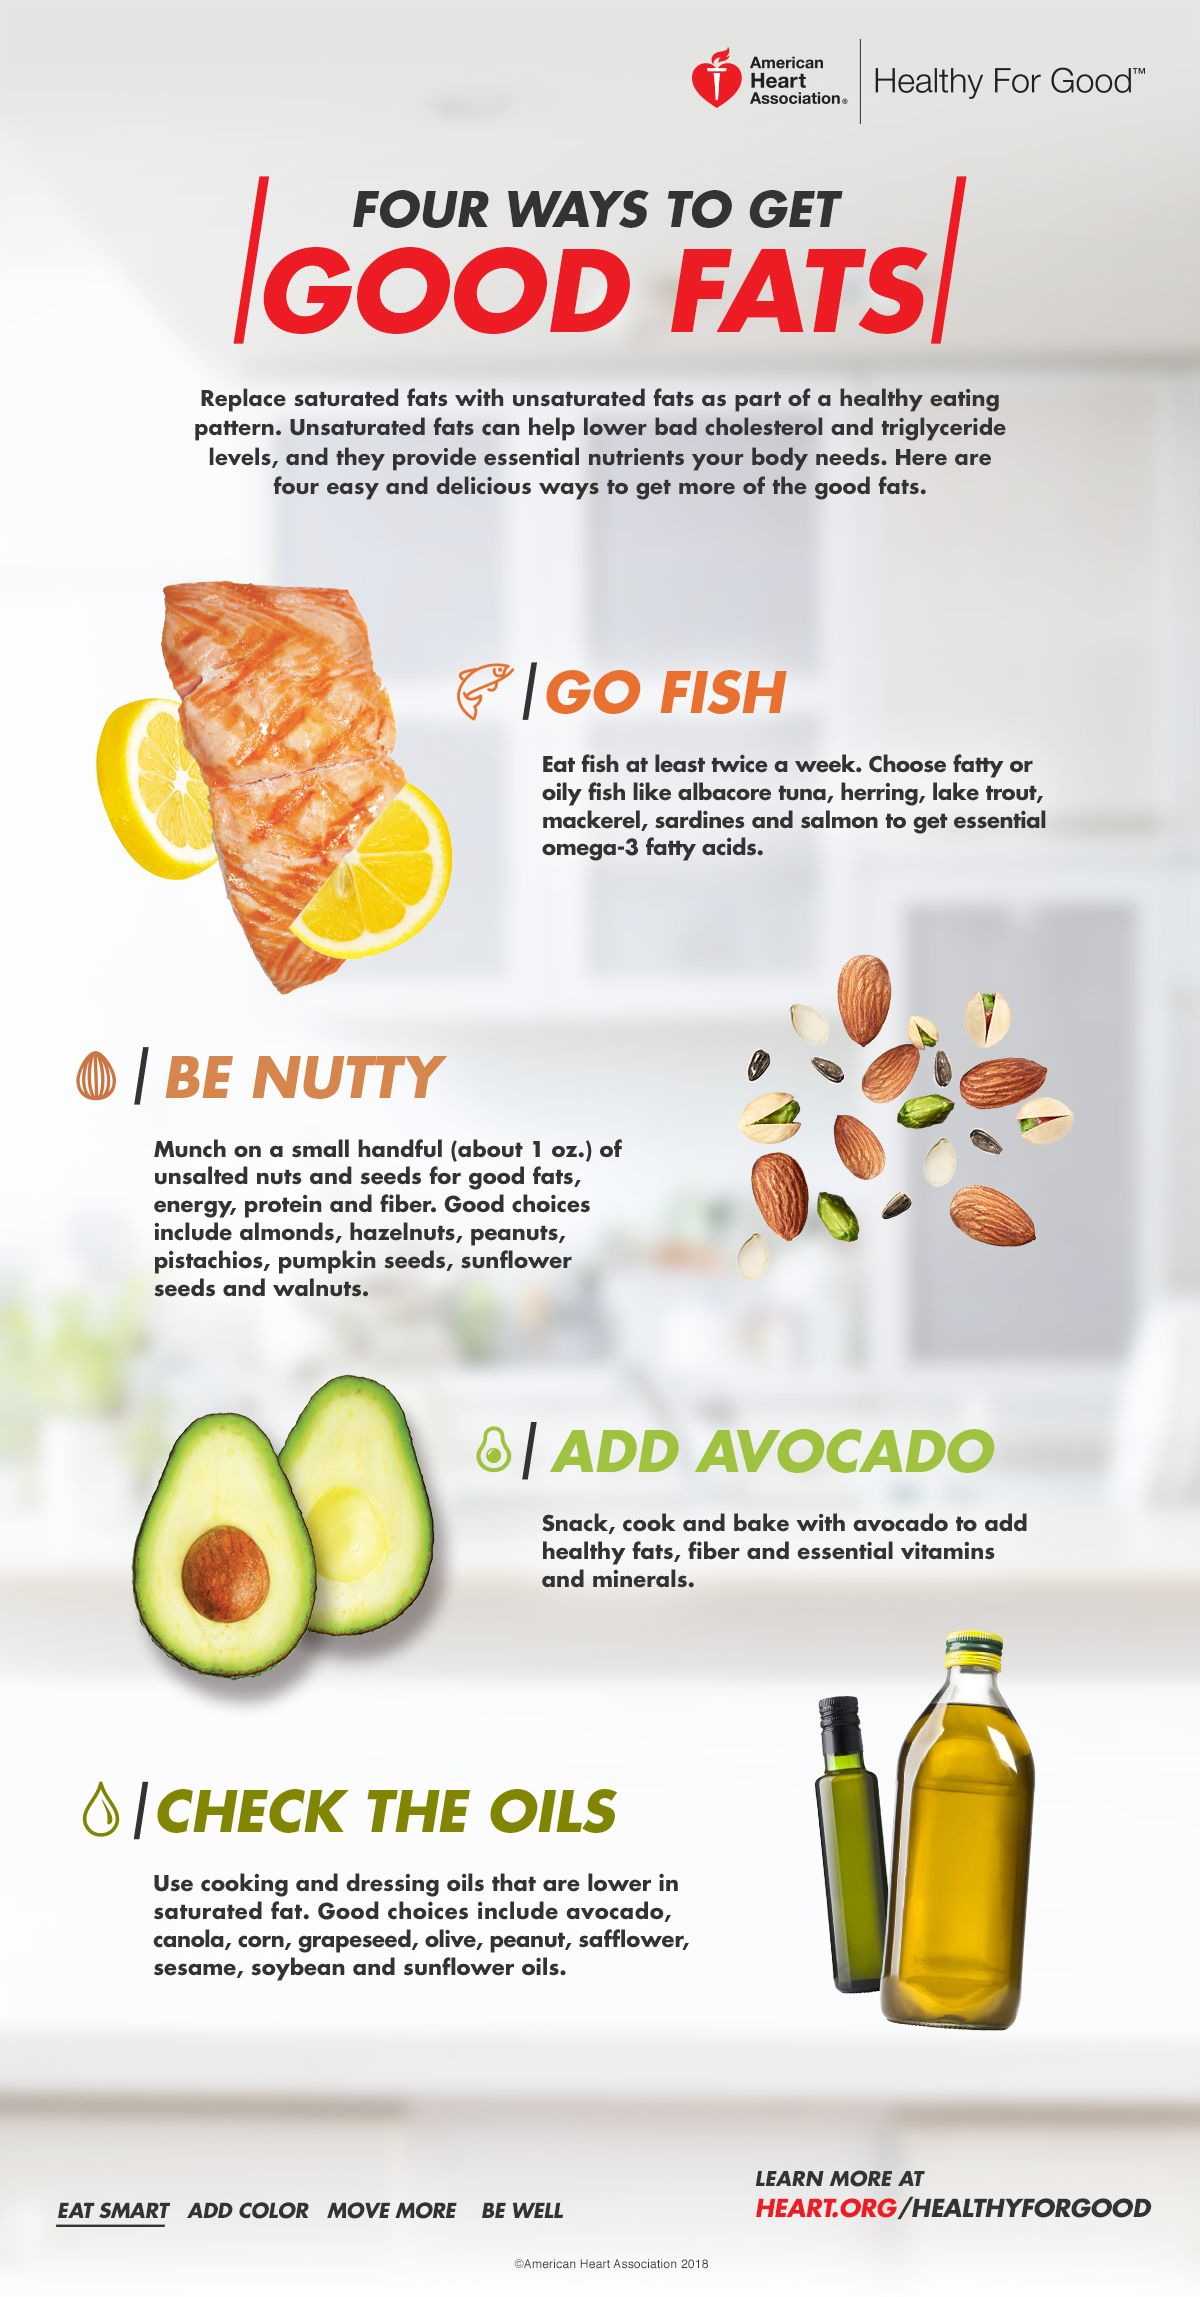 Replace Saturated Fats With Unsaturated Fats As Part Of A